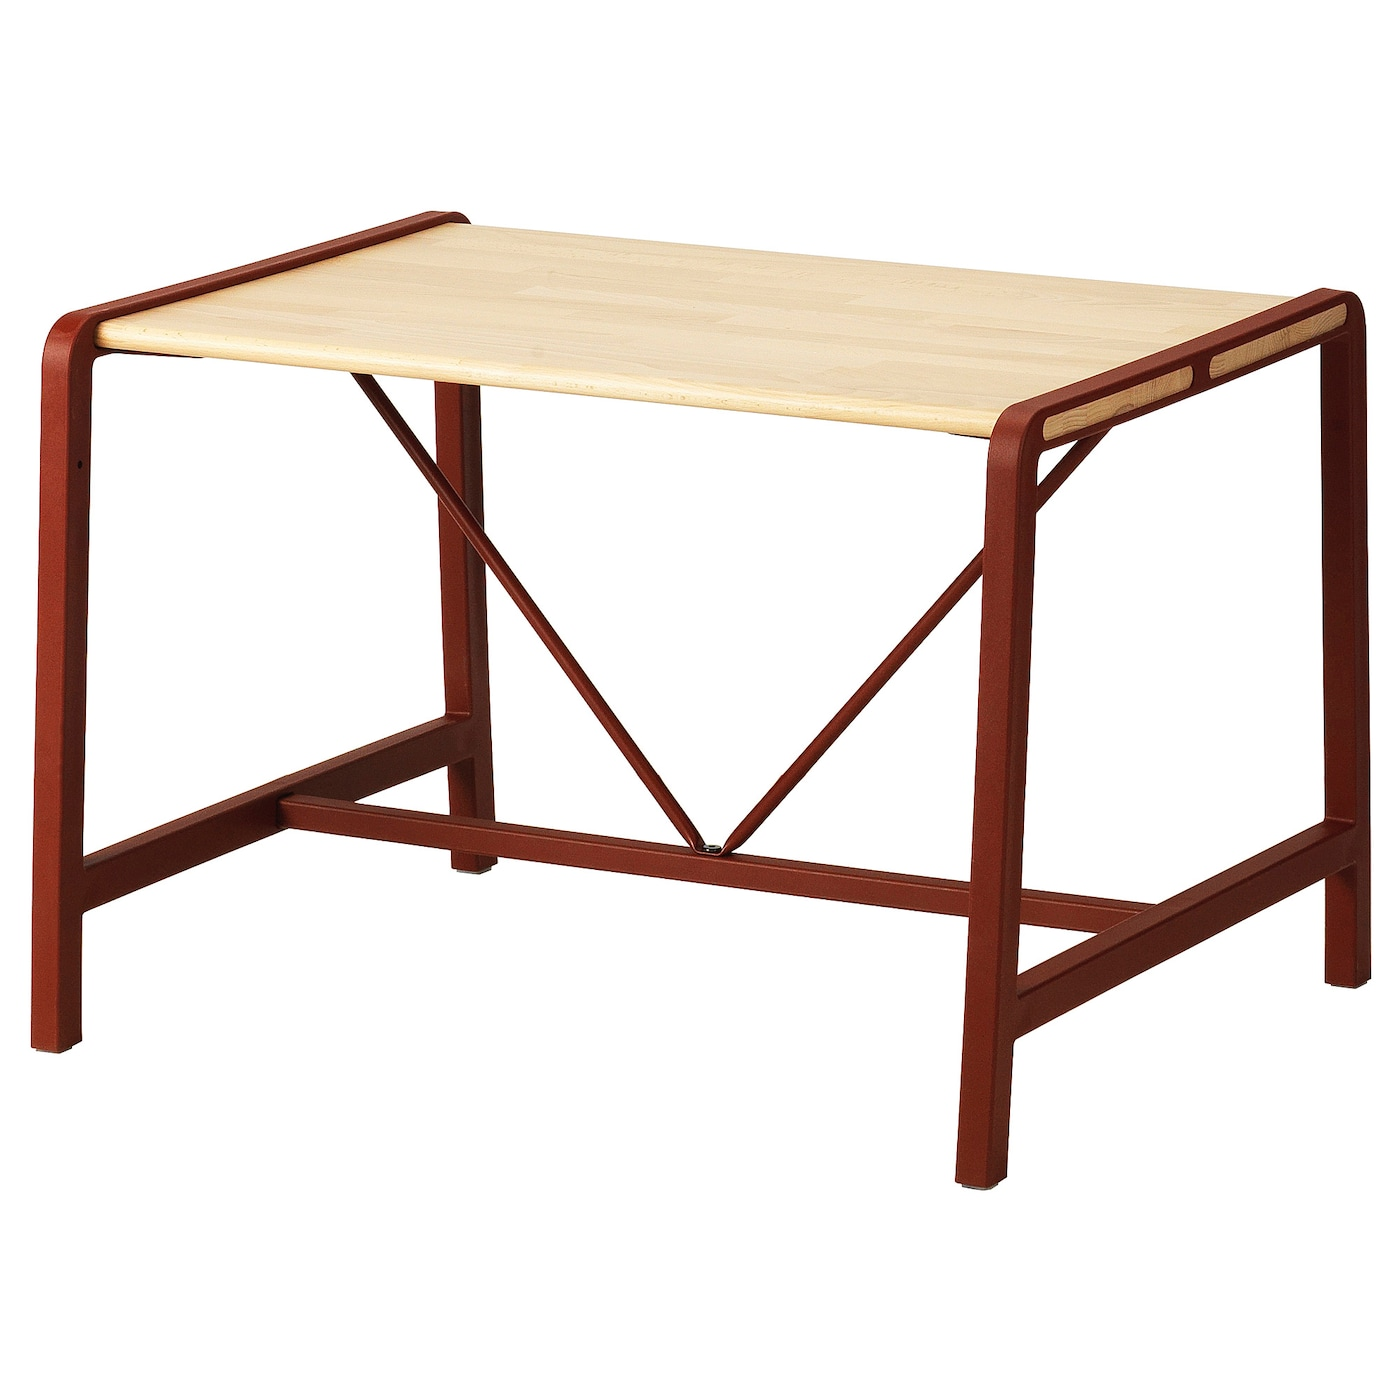 IKEA YPPERLIG children's table Solid beech is a hard-wearing natural material.